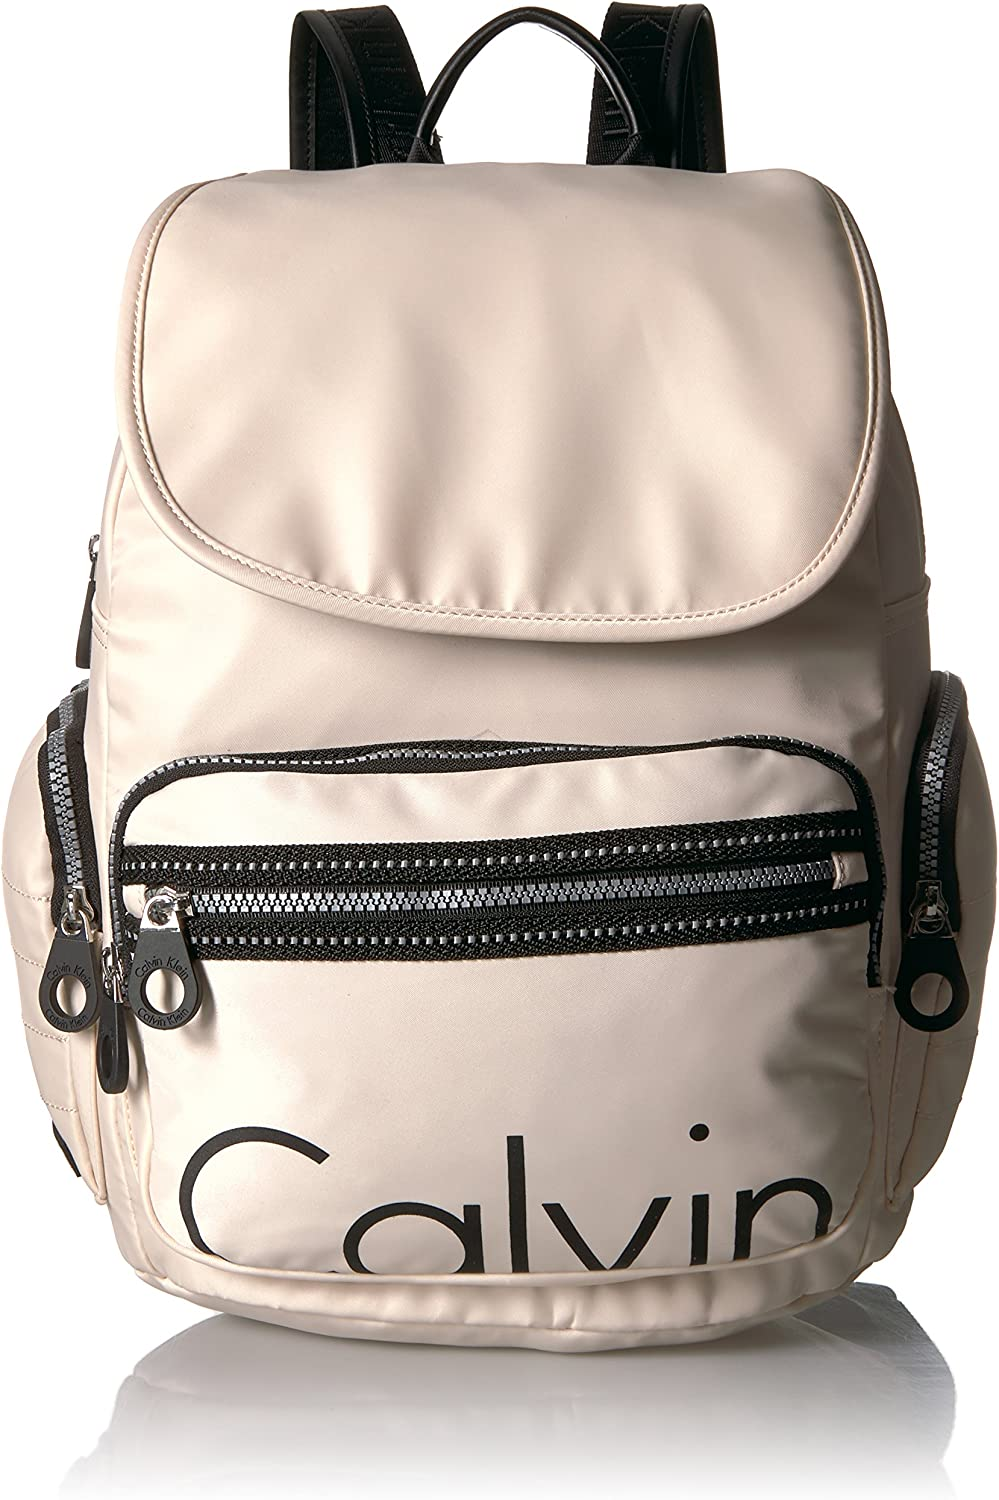 Calvin Klein Athliesure Nylon Multi-Pocket Backpack